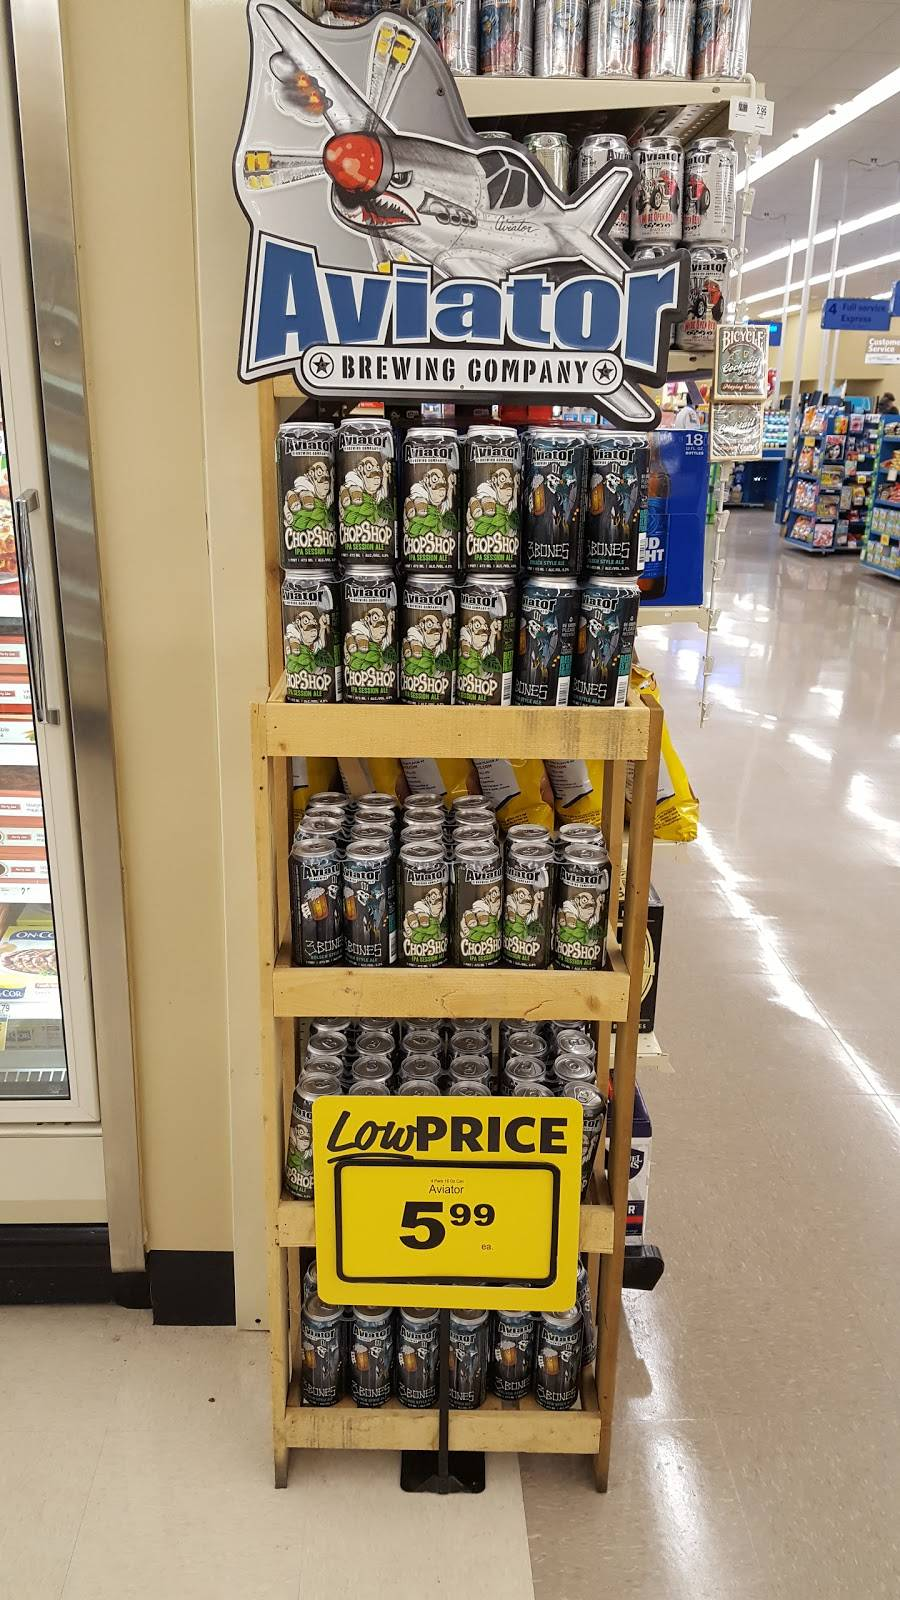 Food Lion - store  | Photo 3 of 9 | Address: 3417 N Main St, Fuquay-Varina, NC 27526, USA | Phone: (919) 577-0555